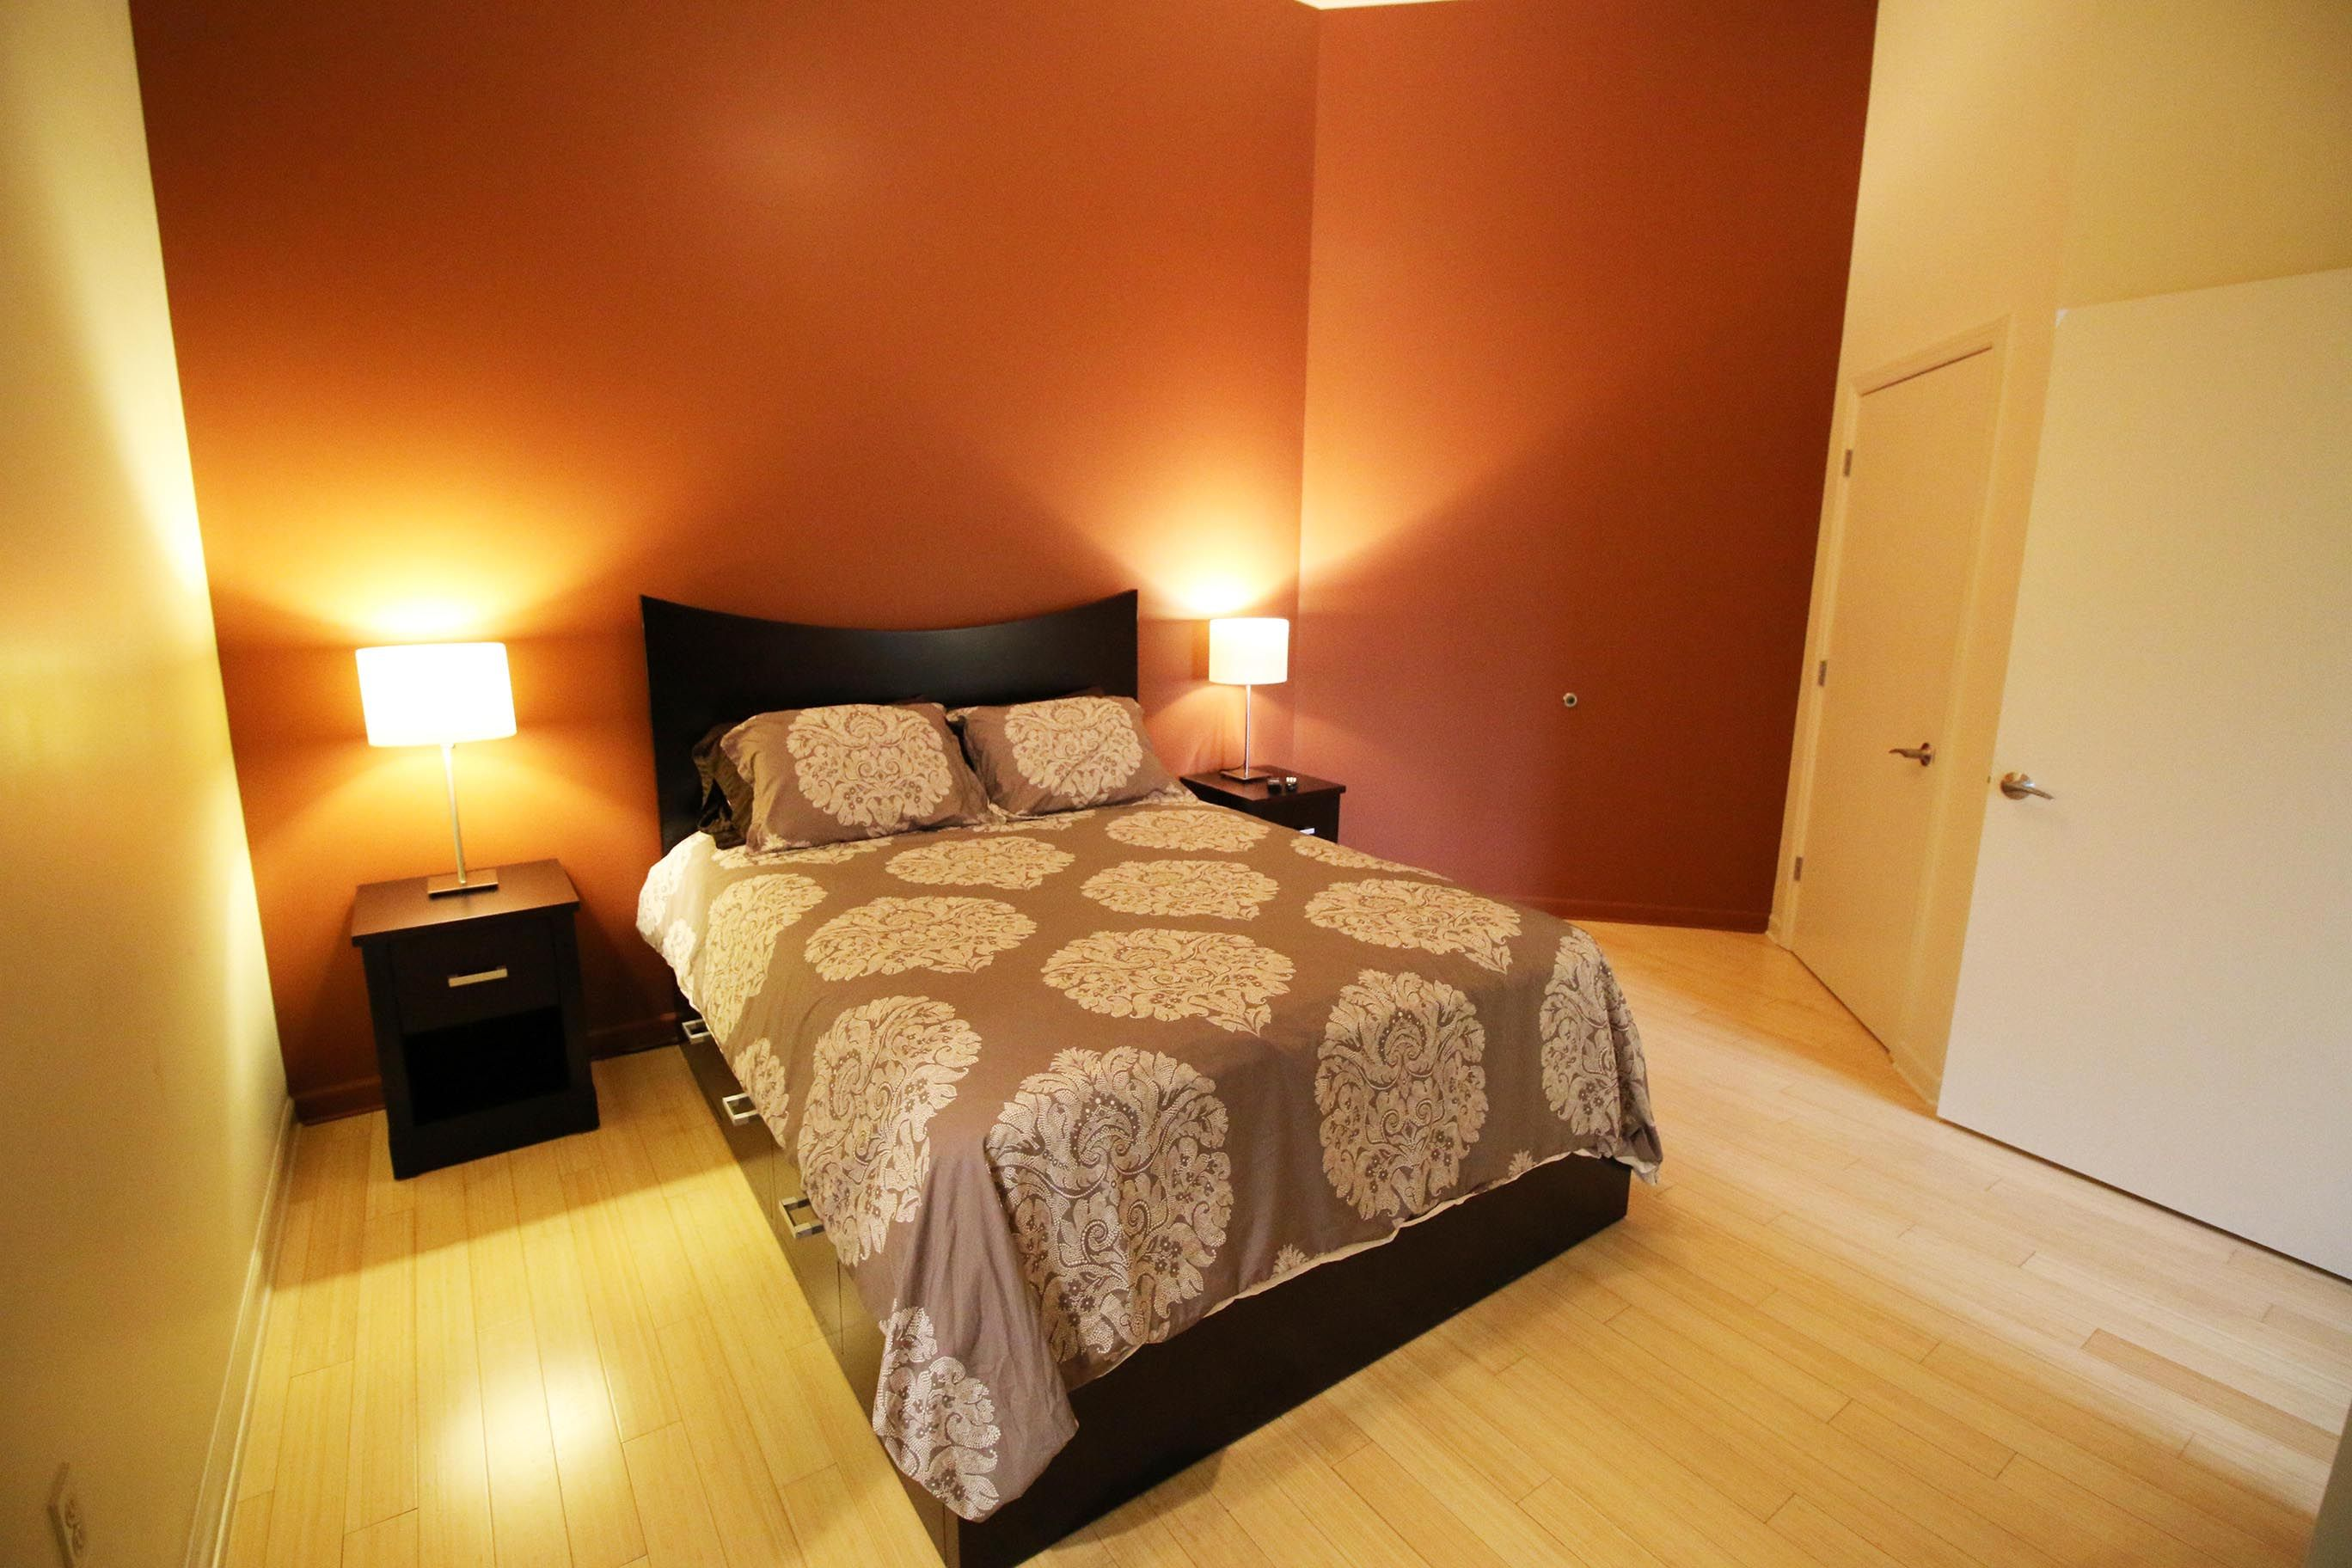 Master bedroom | 1 bedroom apartment, Furnished apartment ...